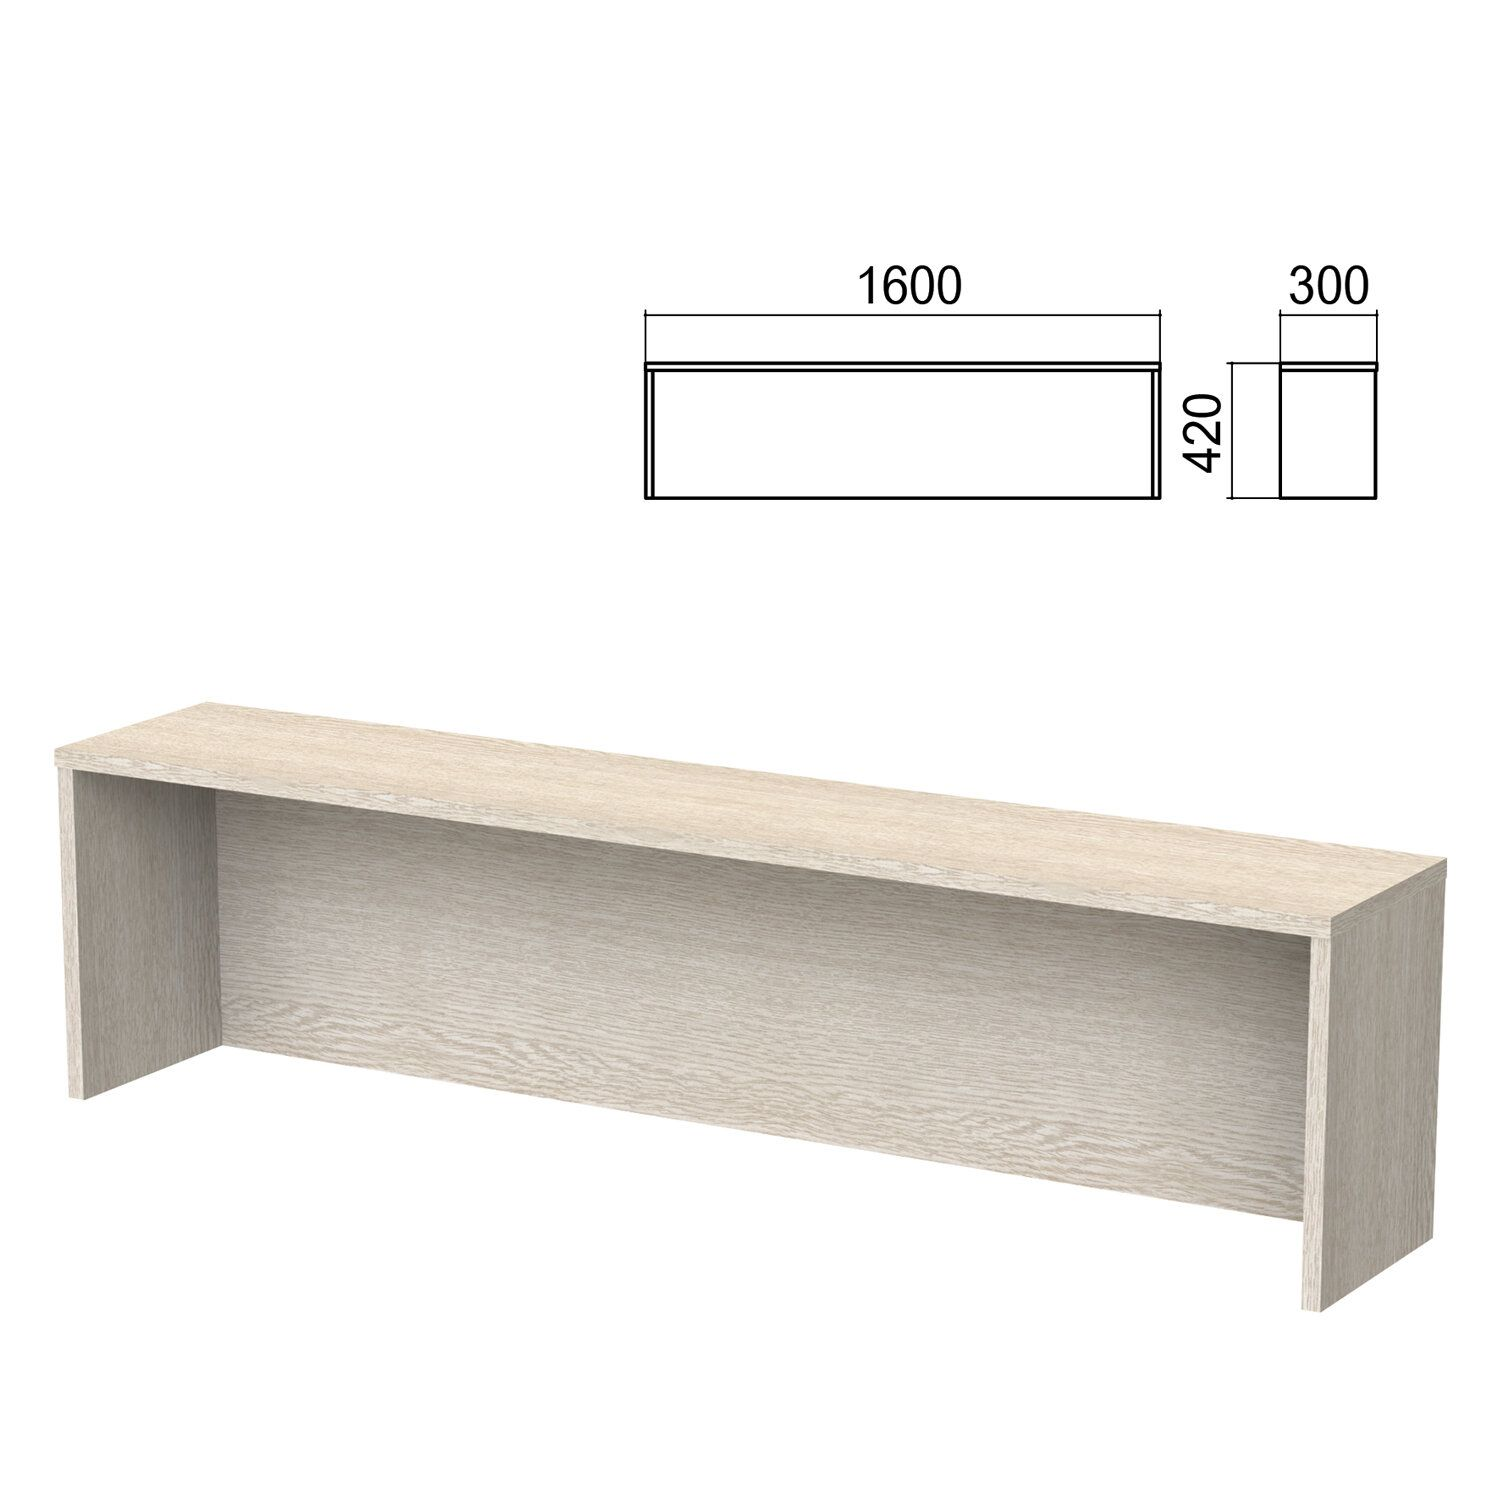 Argo table add-on, 1600 mm wide, ash shimo